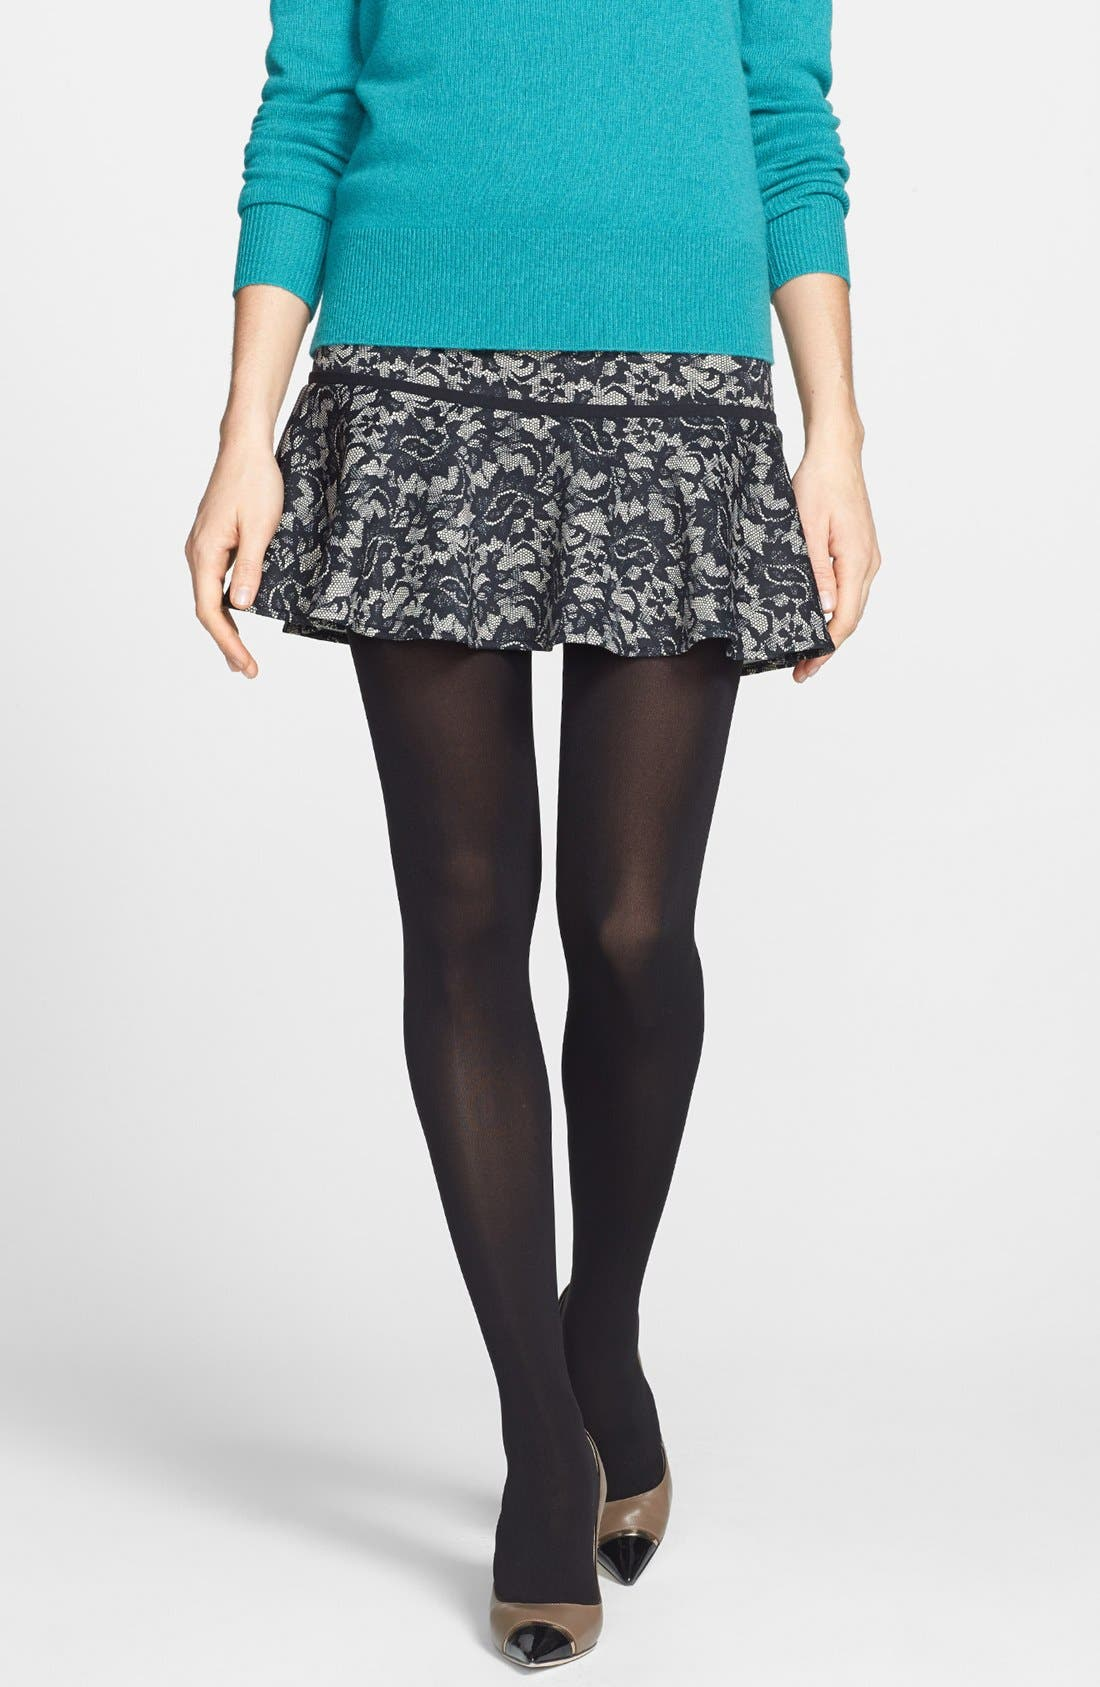 Main Image - SPANX® 'Tight End' High Waist Tights (Regular & Plus Size) (Online Only)